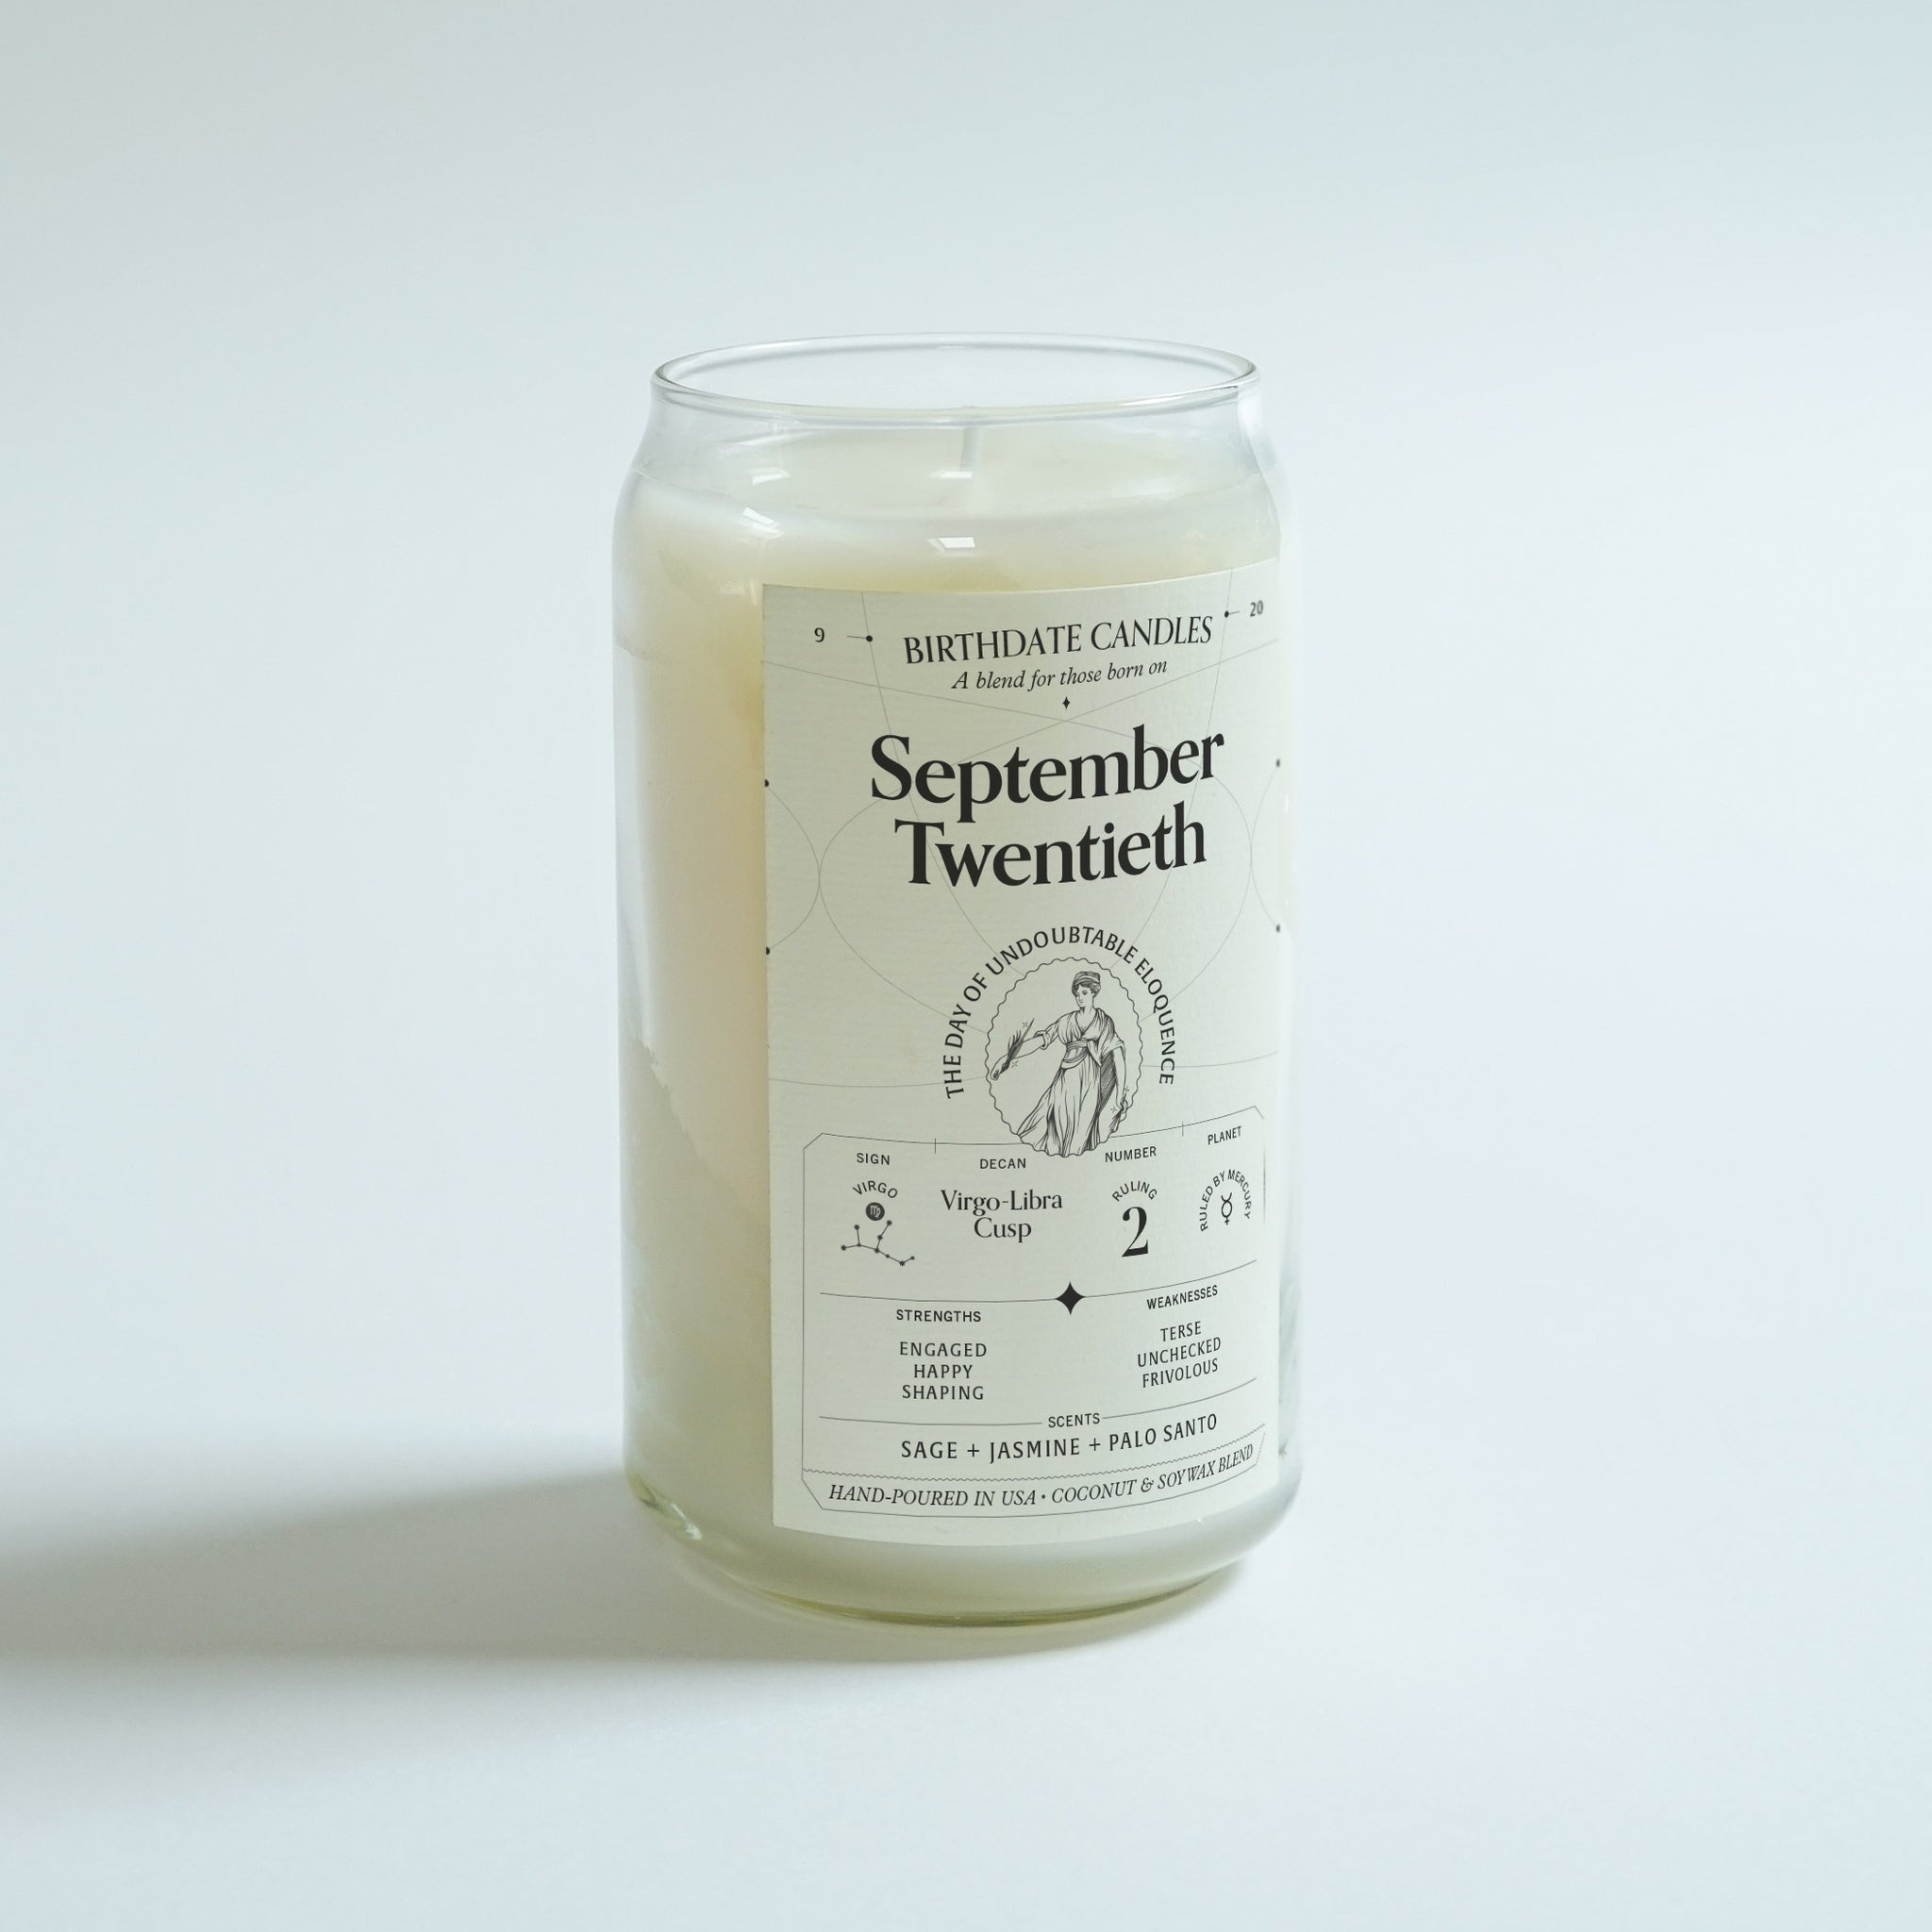 The September Twentieth Birthday Candle